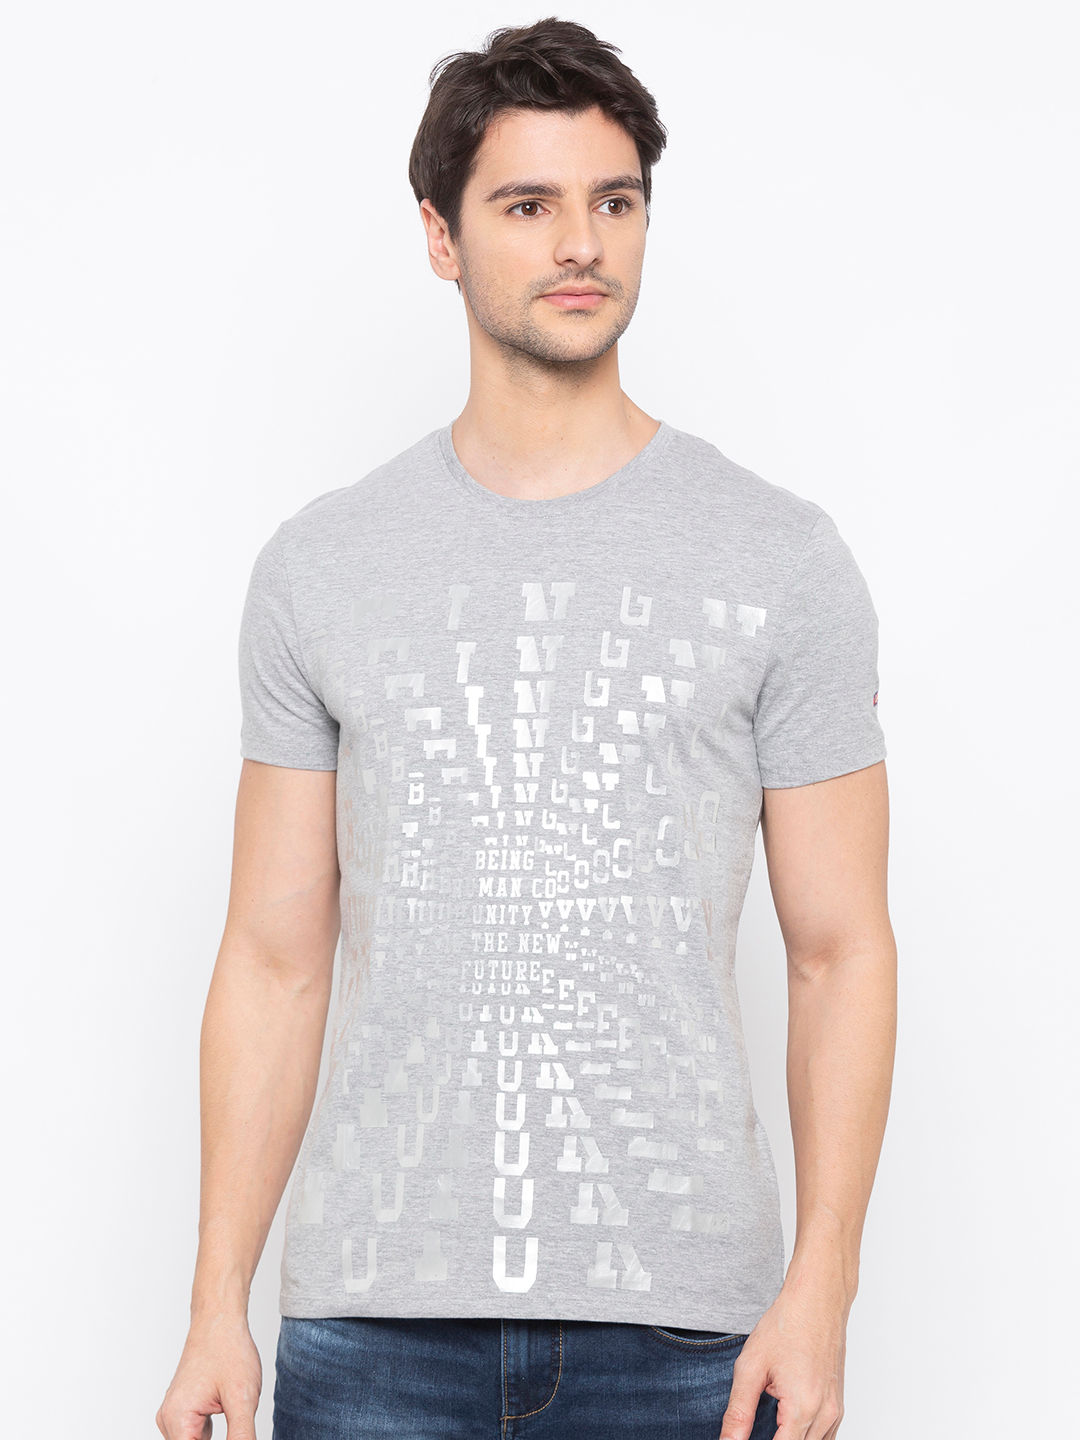 Mens Short Sleeve Crew Neck T-shirt with foil print